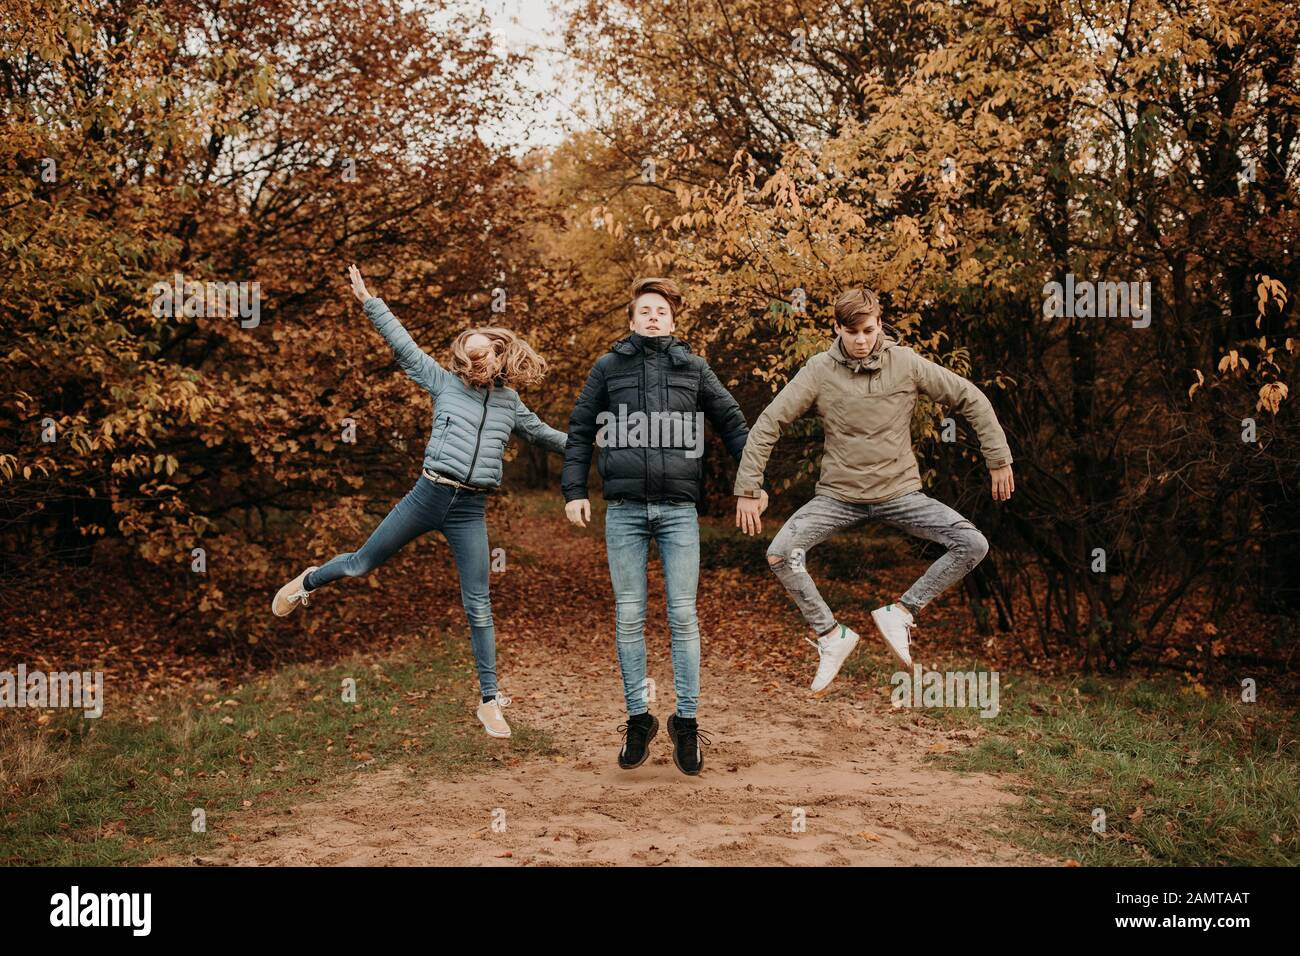 Three children in an autumn woodland jumping in the air, Netherlands Stock Photo